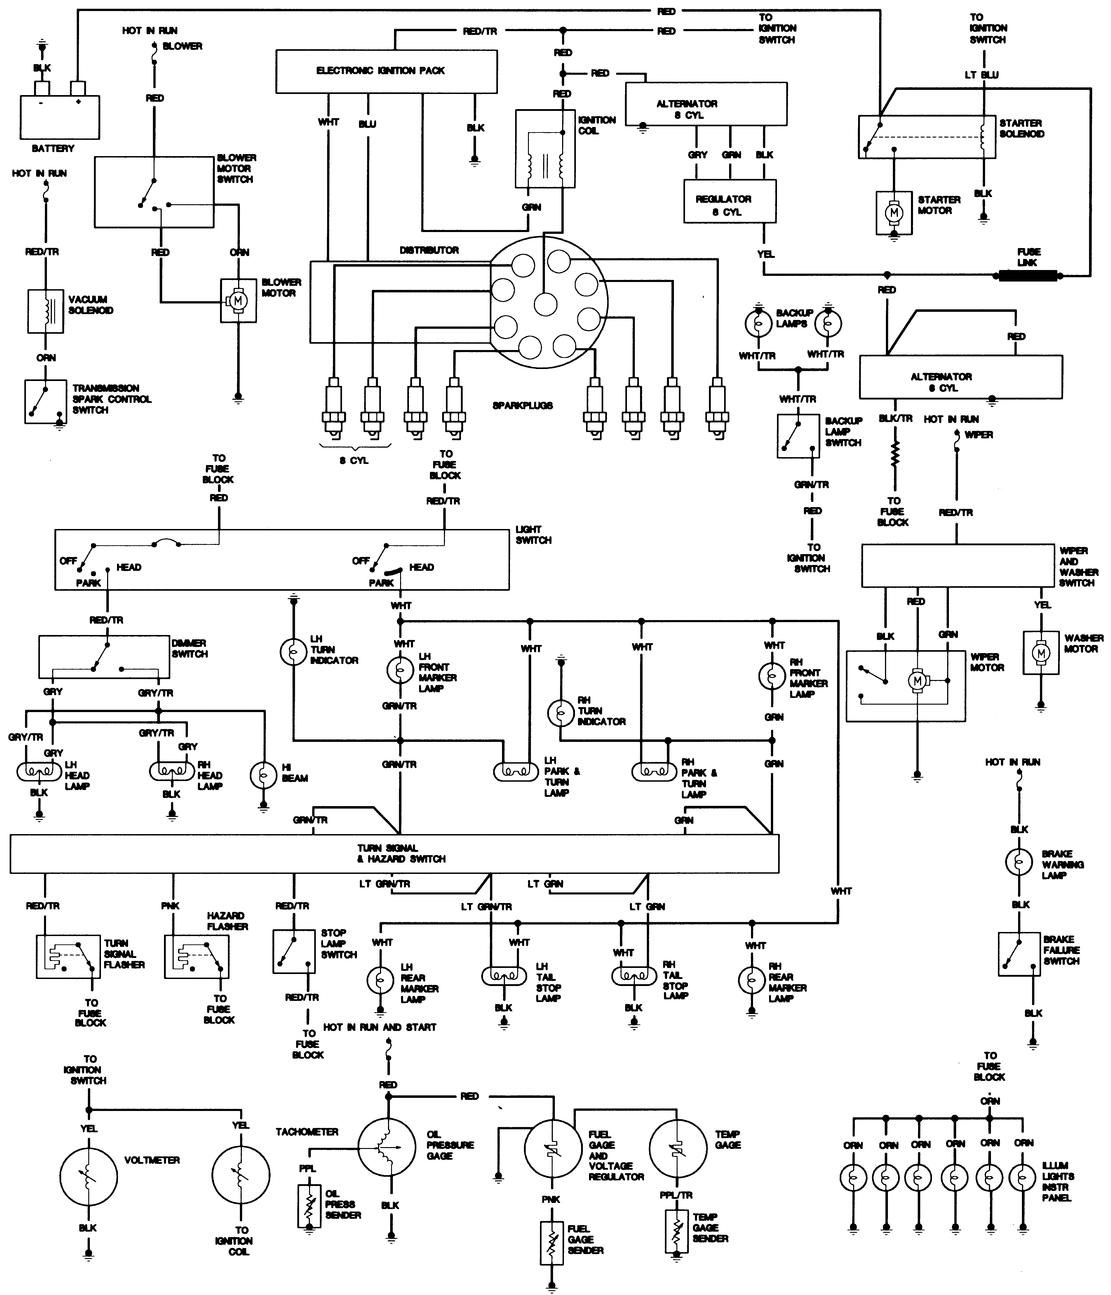 1974 jeep cj wiring diagram 1980 cj5, turn on headlights and low beams do not work but ... #6